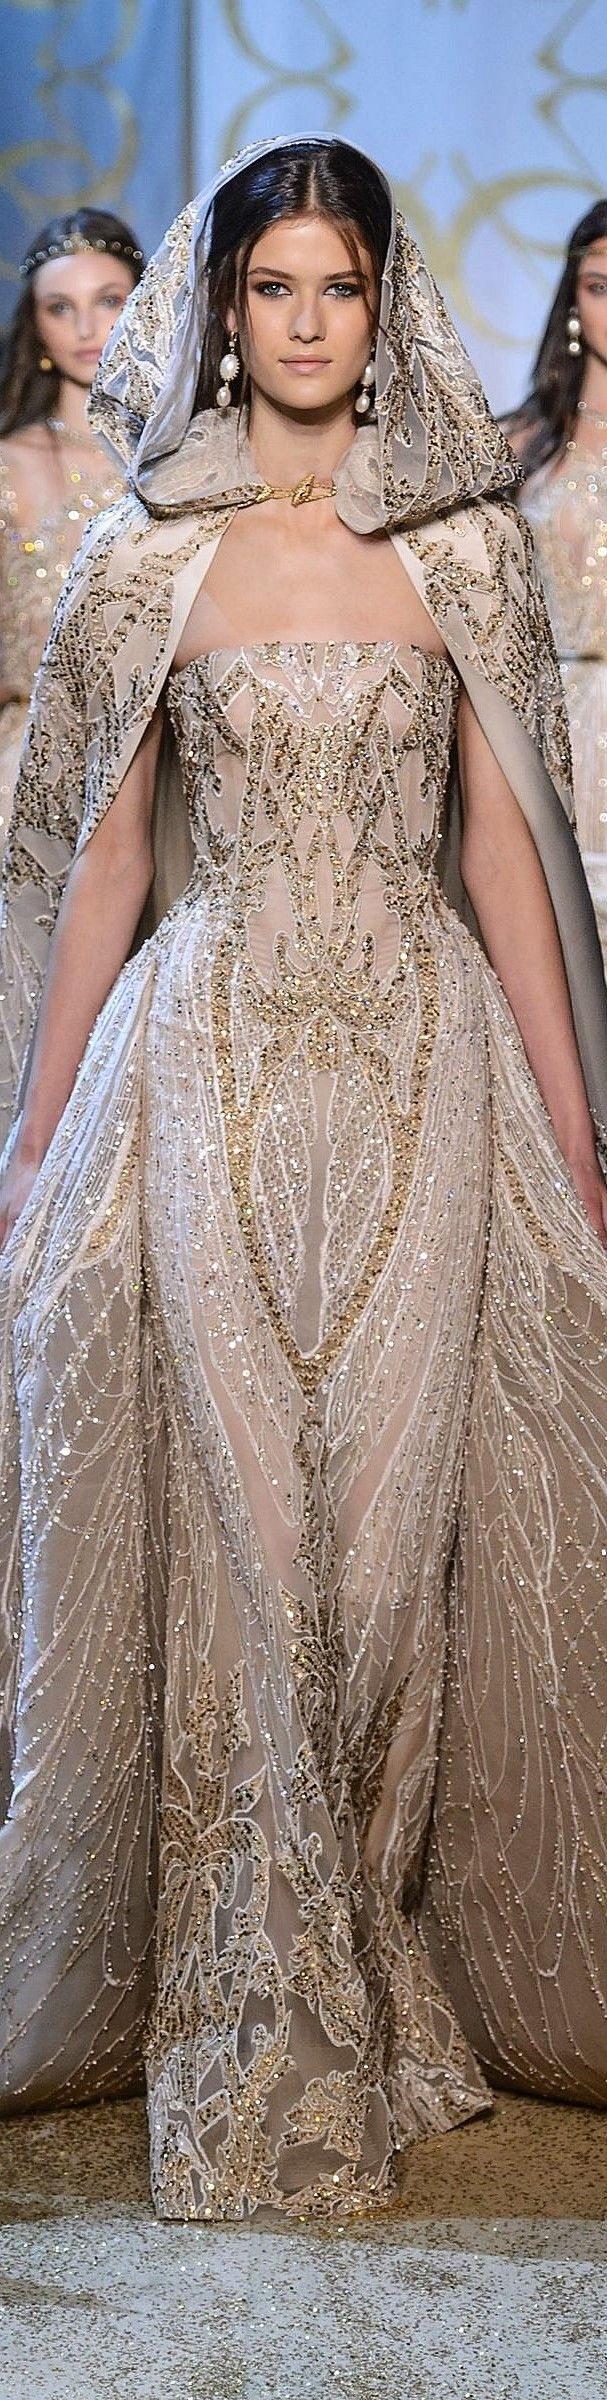 Elie Saab Haute Couture Fall-Winter 2017-2018 absolutely gorgeous